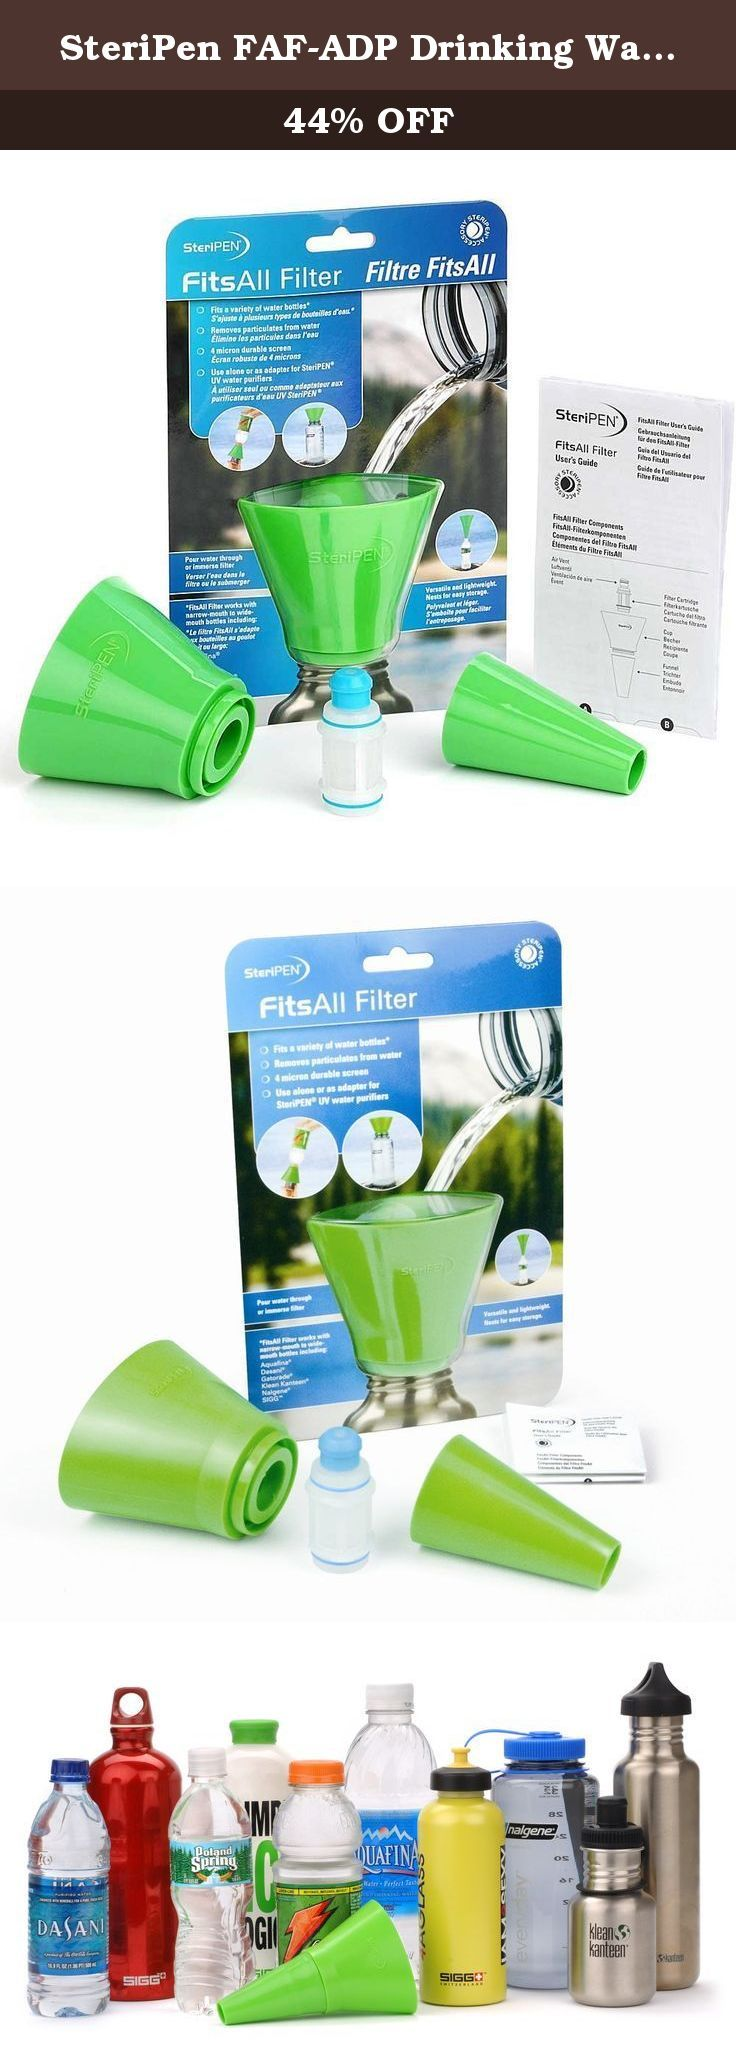 SteriPen FAF-ADP Drinking Water Bottles Filter Kit. Offers the flexibility to filter water into bottles with a wide range of opening sizes.